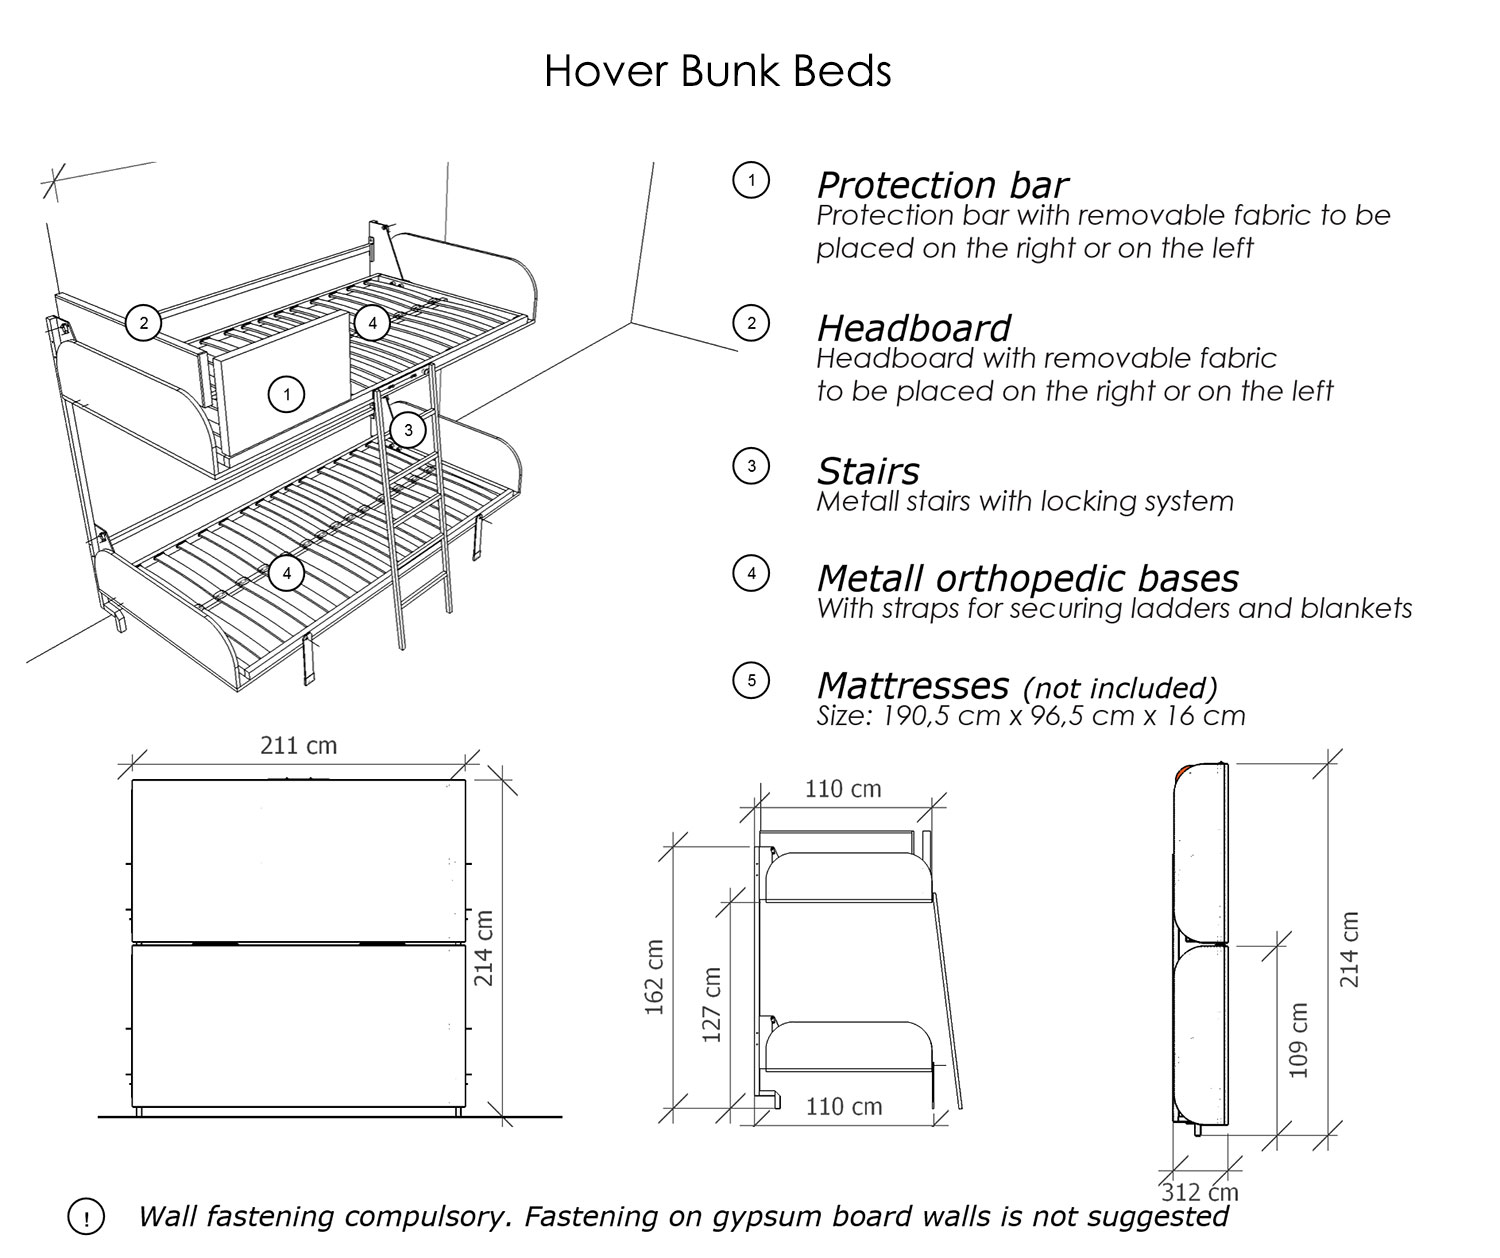 Bunk Bed Dimensions Hover Compact Fold Away Wall Bunk Beds Expand